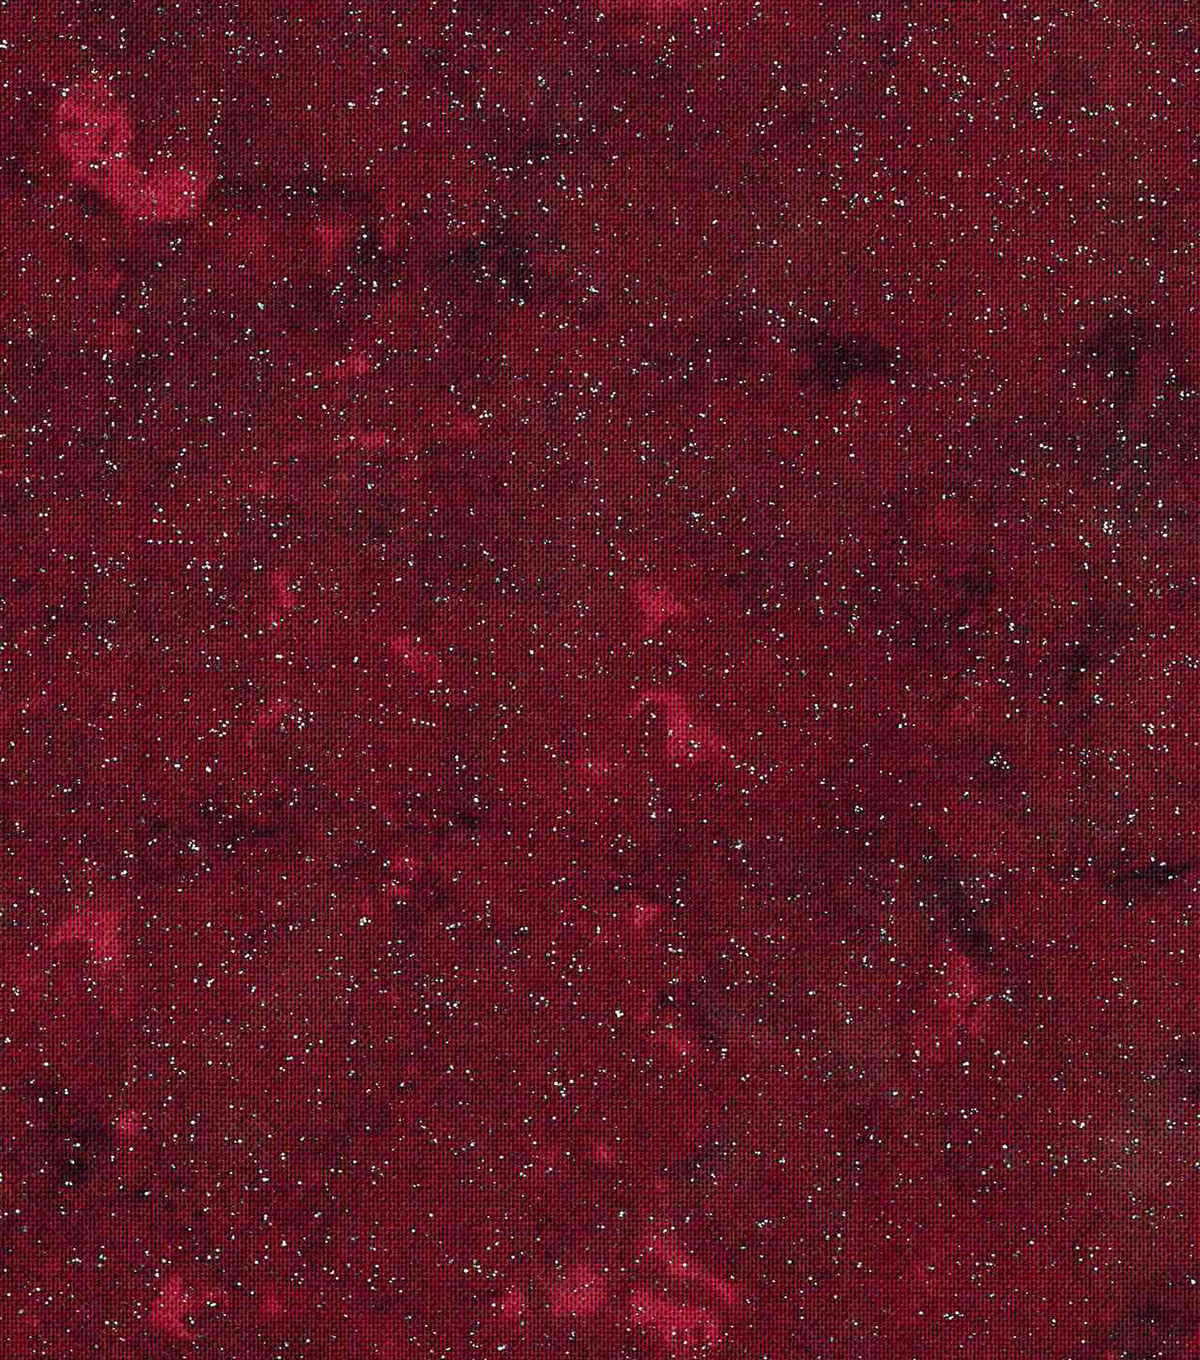 Keepsake Calico Cotton Fabric -Marble Blender Red Glitter